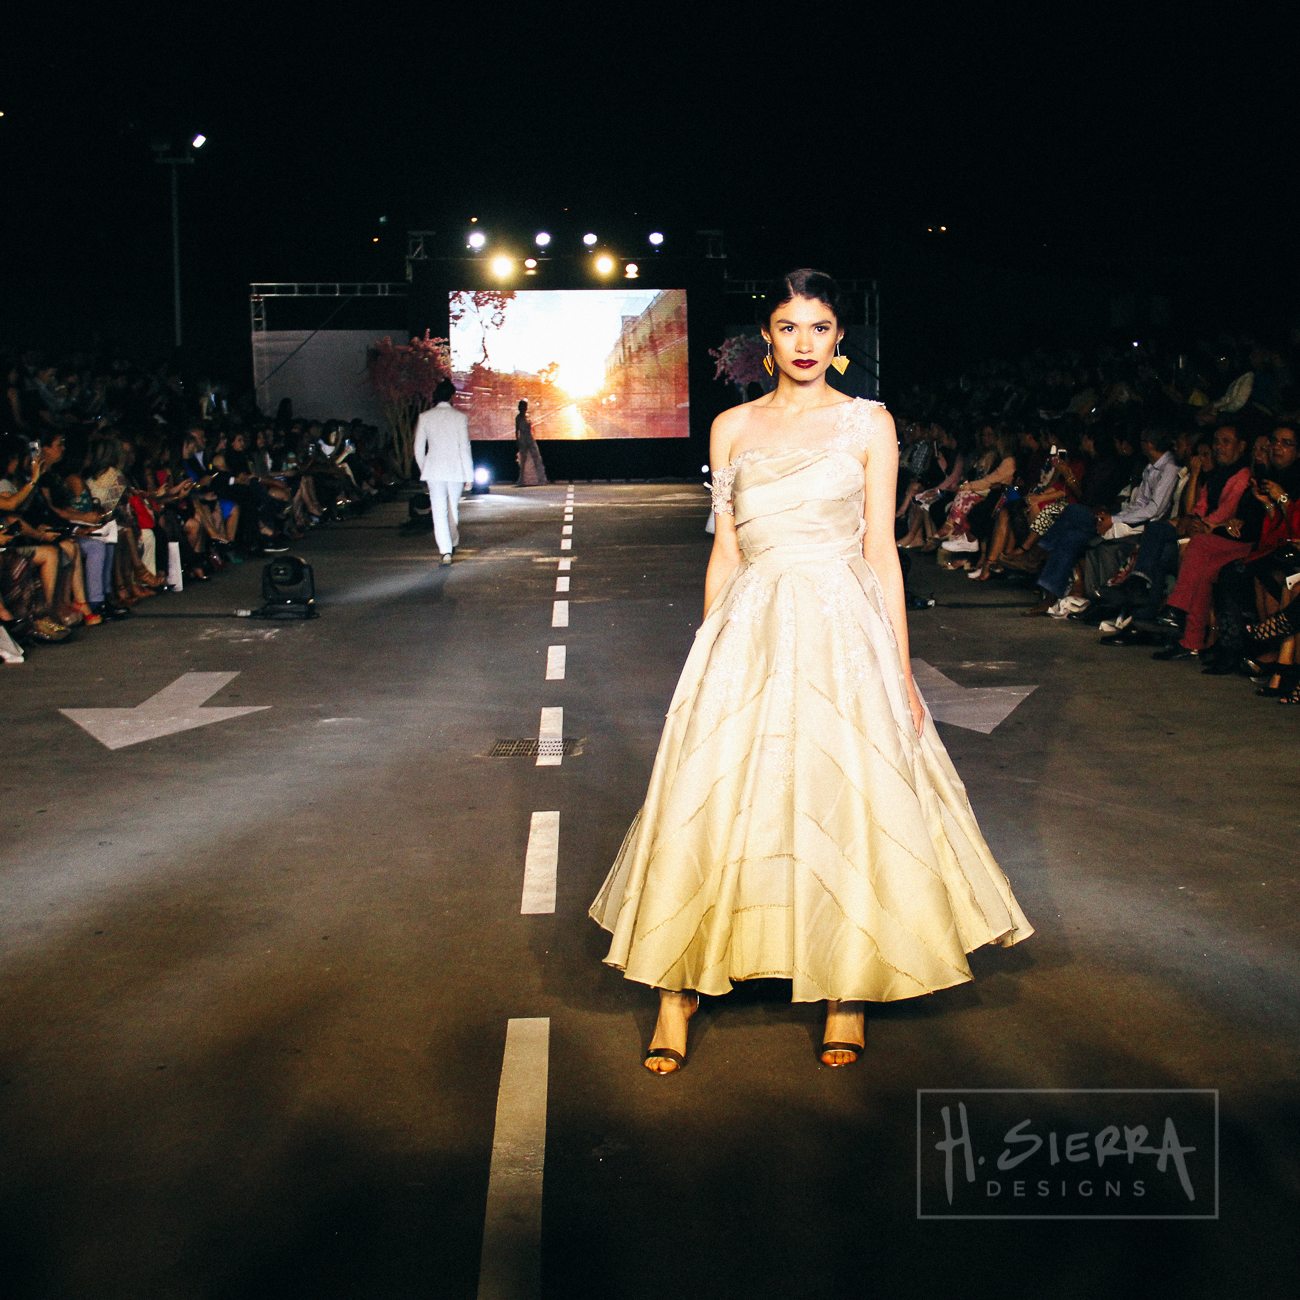 Yoyobarrientos_runway.jpg